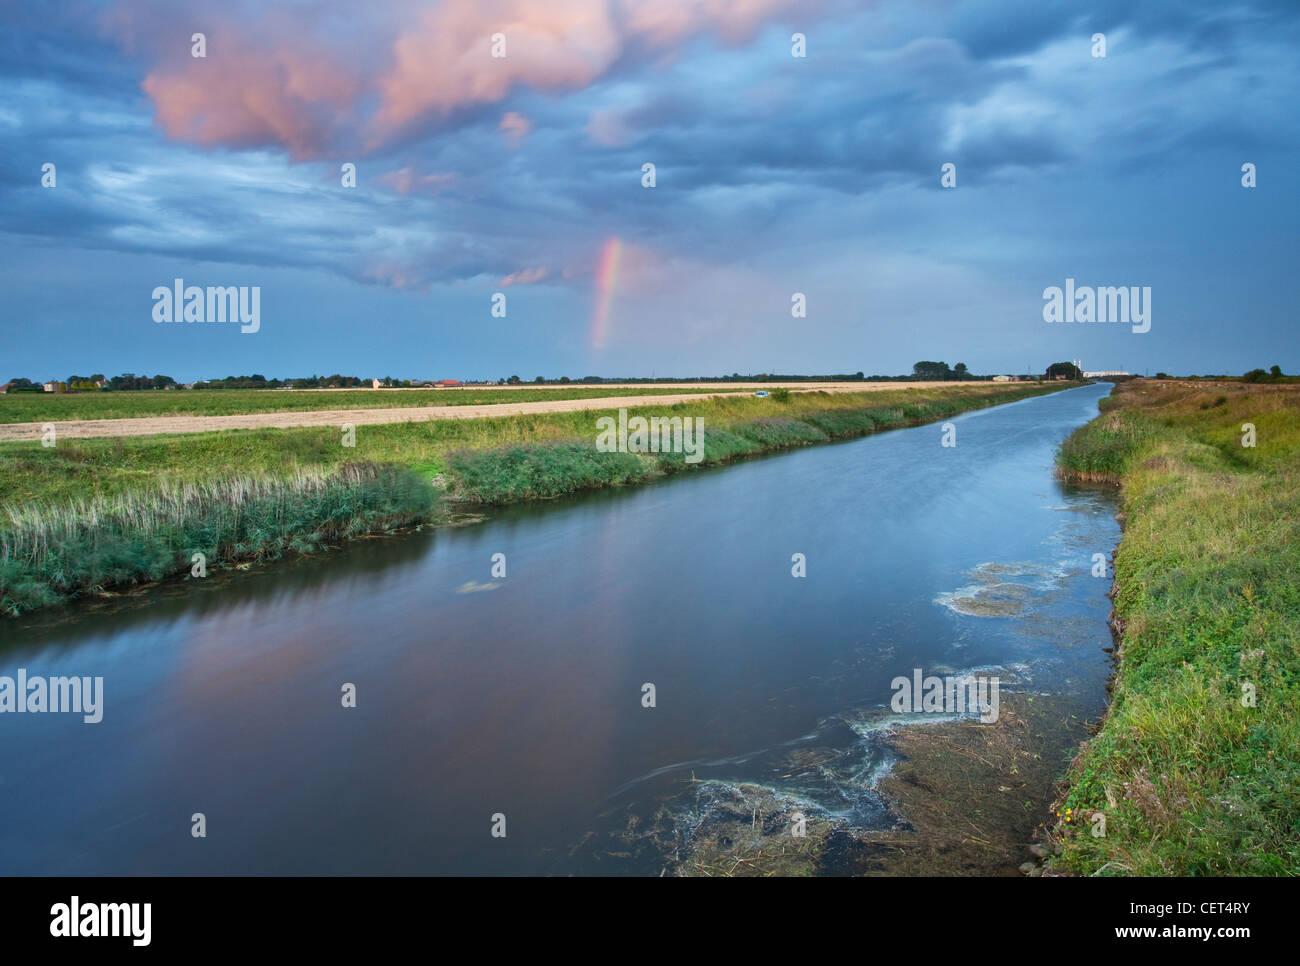 A rainbow appears shortly before sunset over the South Holland Main Drain in Lincolnshire. - Stock Image